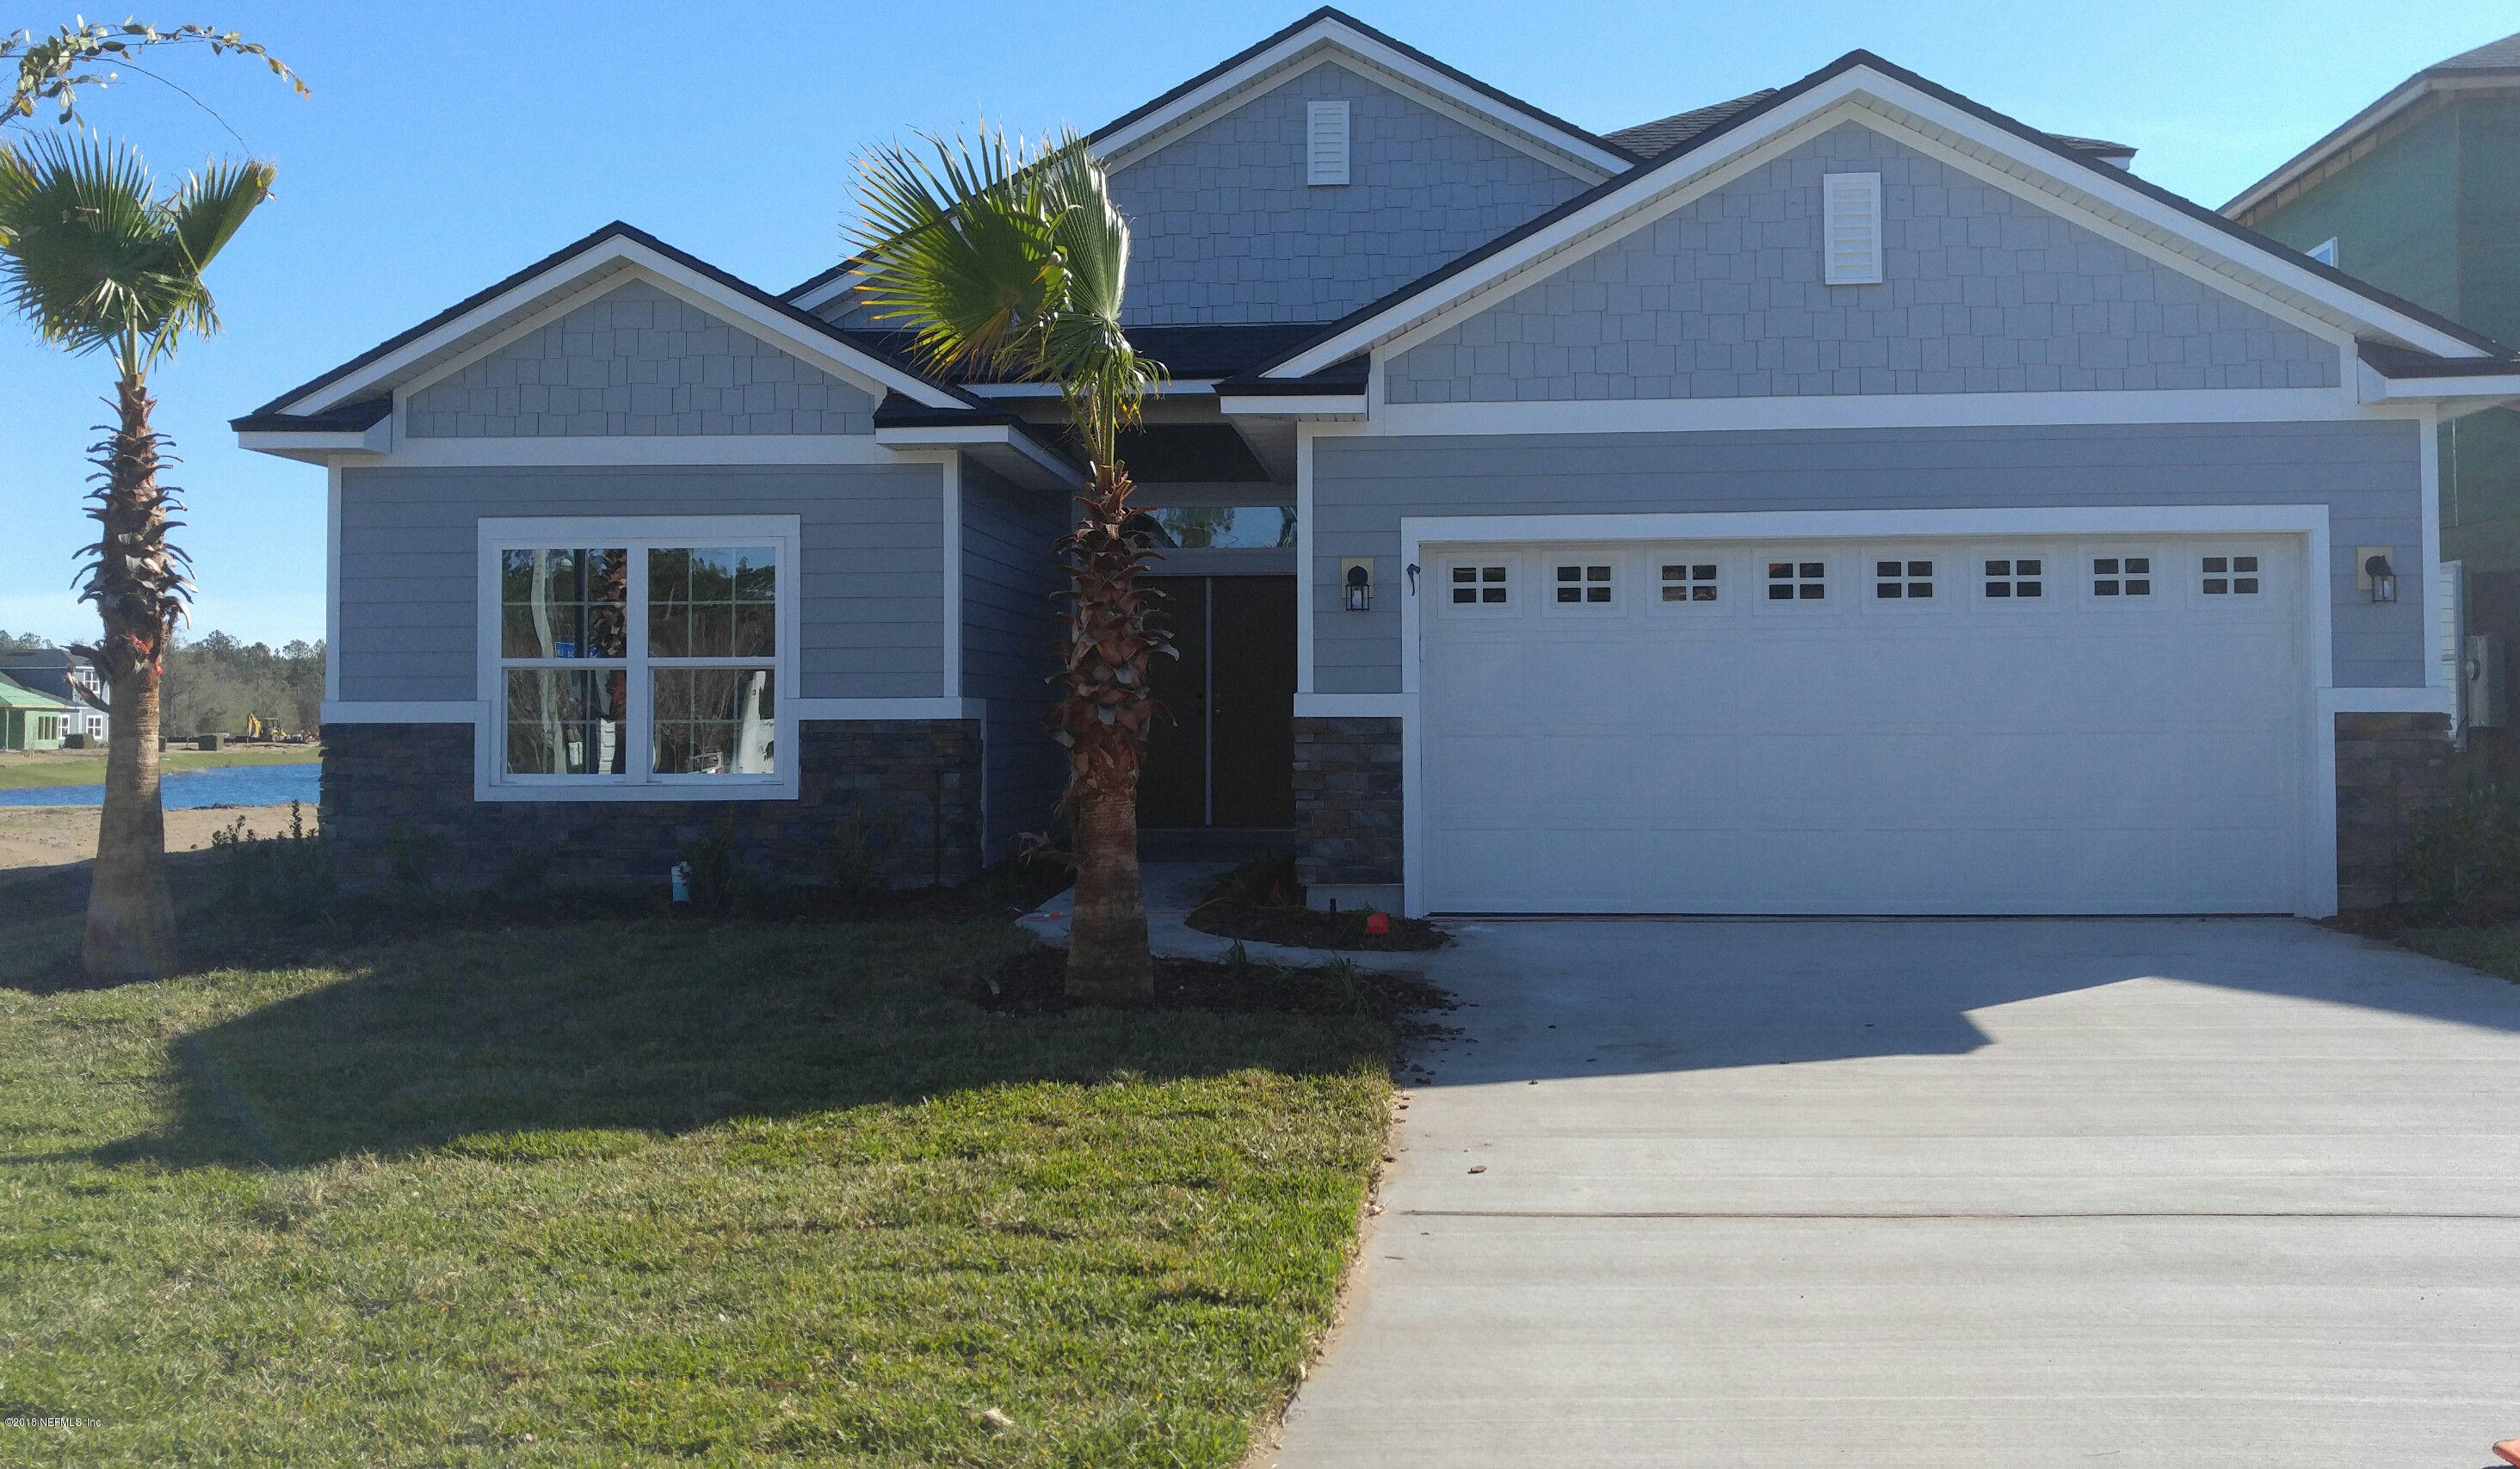 199 GREENVIEW, ST AUGUSTINE, FLORIDA 32092, 4 Bedrooms Bedrooms, ,3 BathroomsBathrooms,Residential - single family,For sale,GREENVIEW,943967